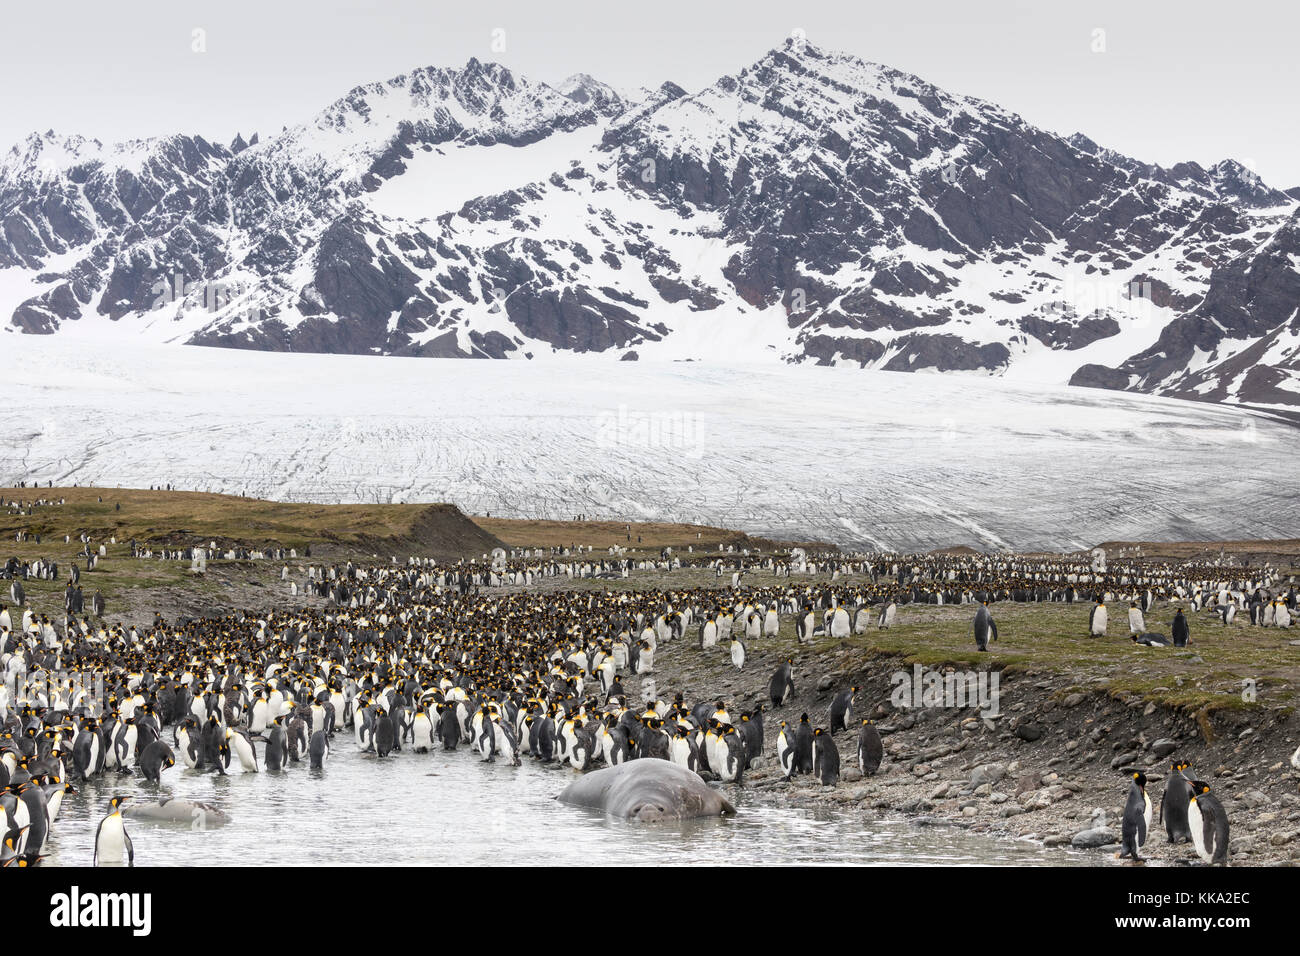 Elephant seals and king penguins at St Andrew's Bay, South Georgia Island - Stock Image